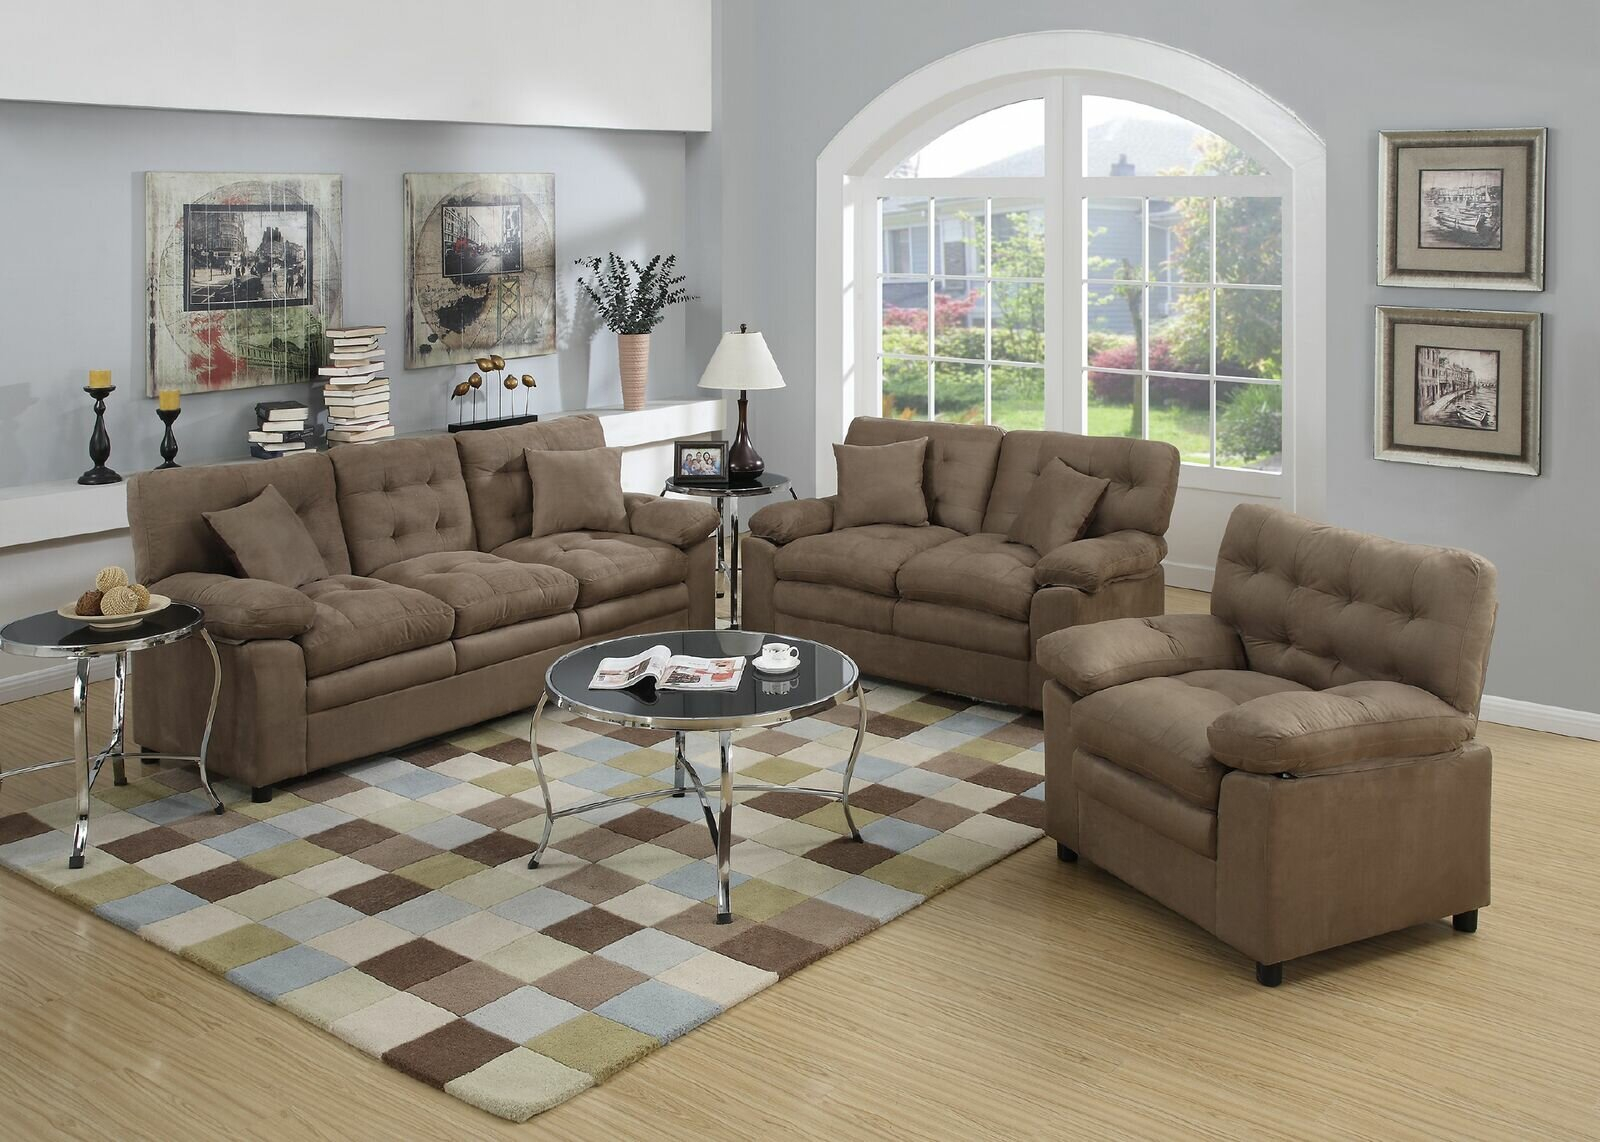 Hayleigh 3 Piece Living Room Set within Cheap 3 Piece Living Room Set